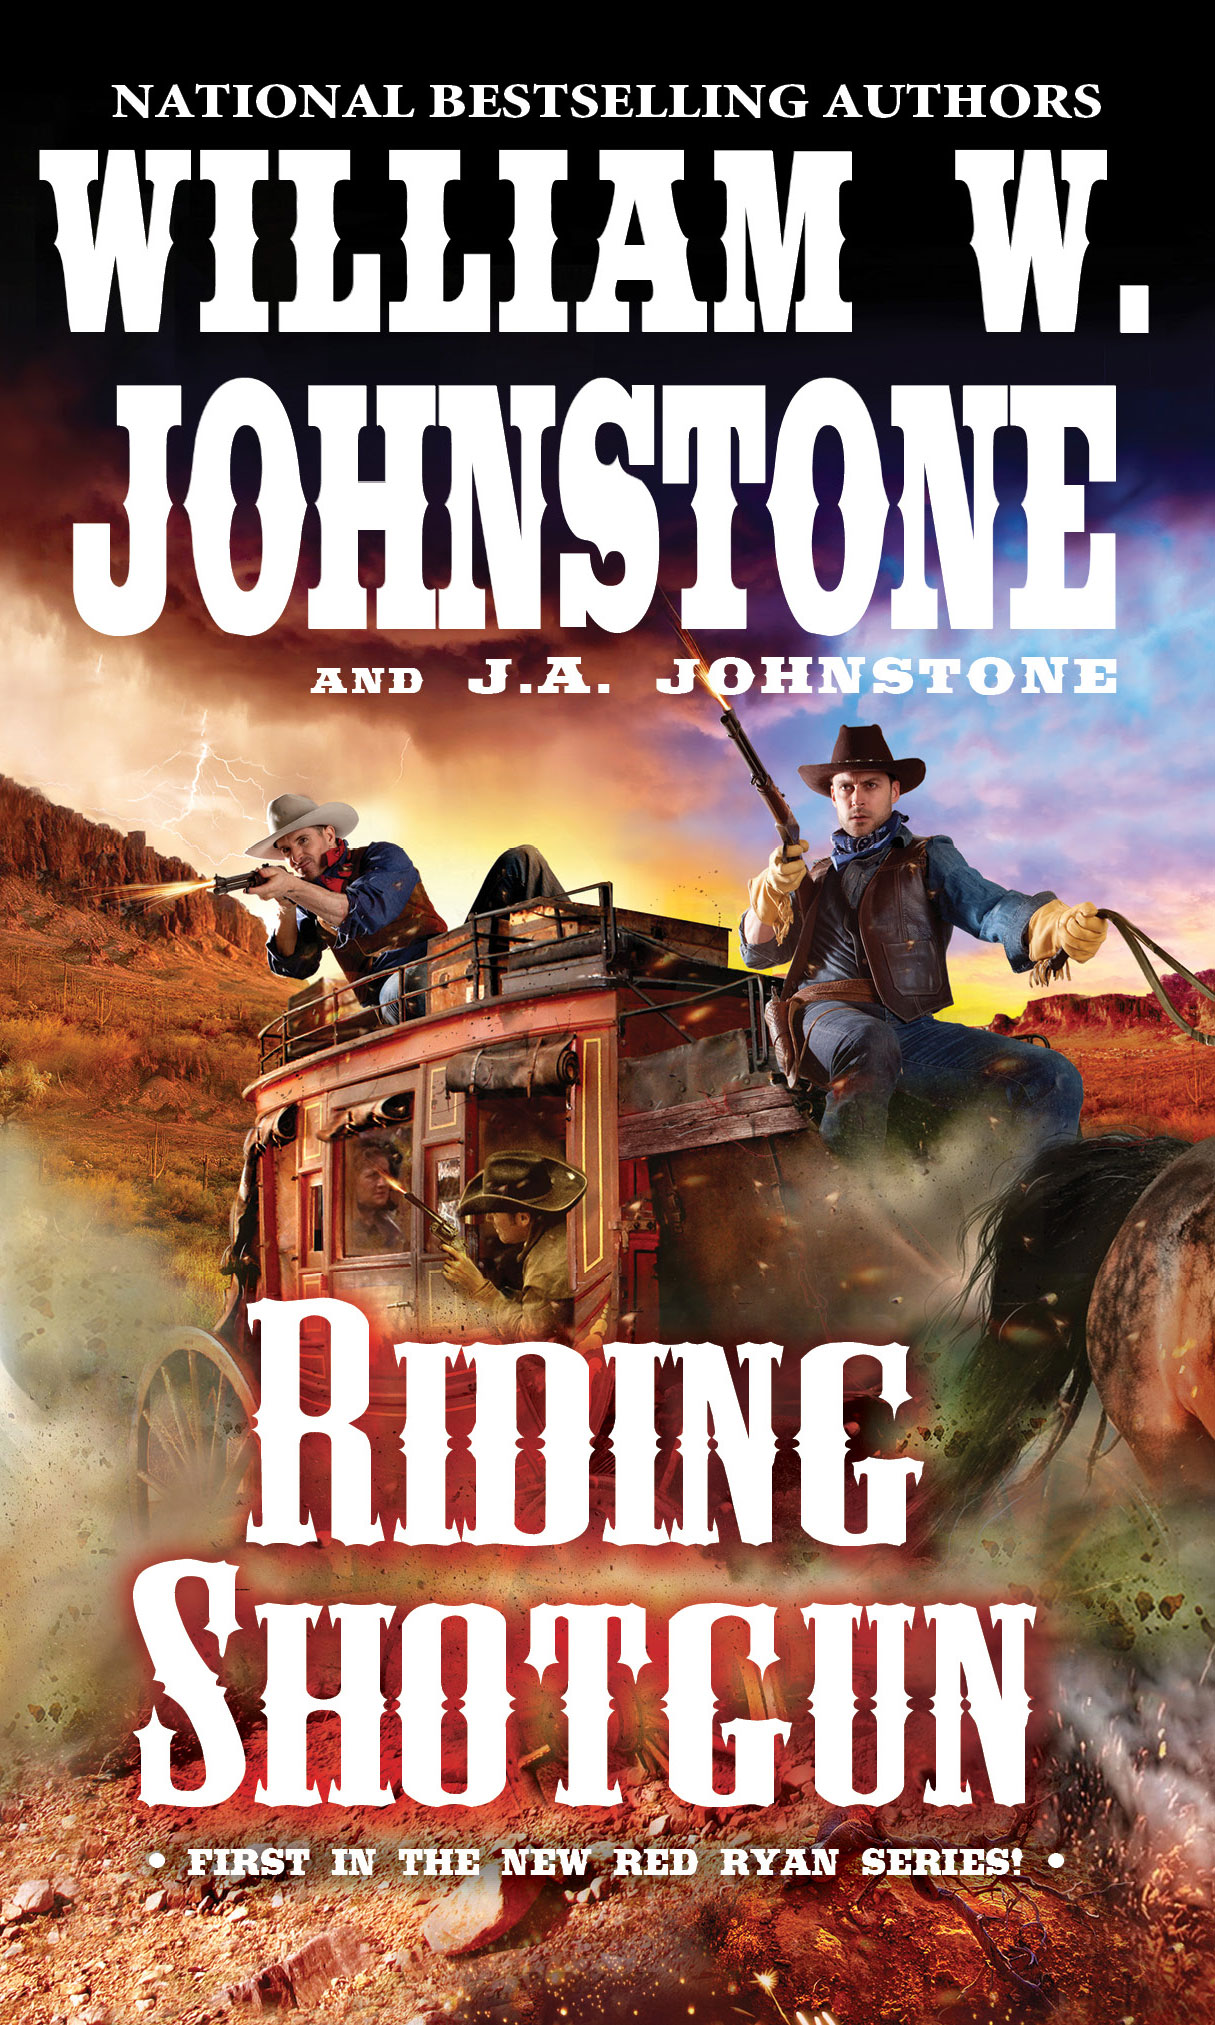 RIDING SHOTGUN by William W. Johnstone and J.A. Johnstone